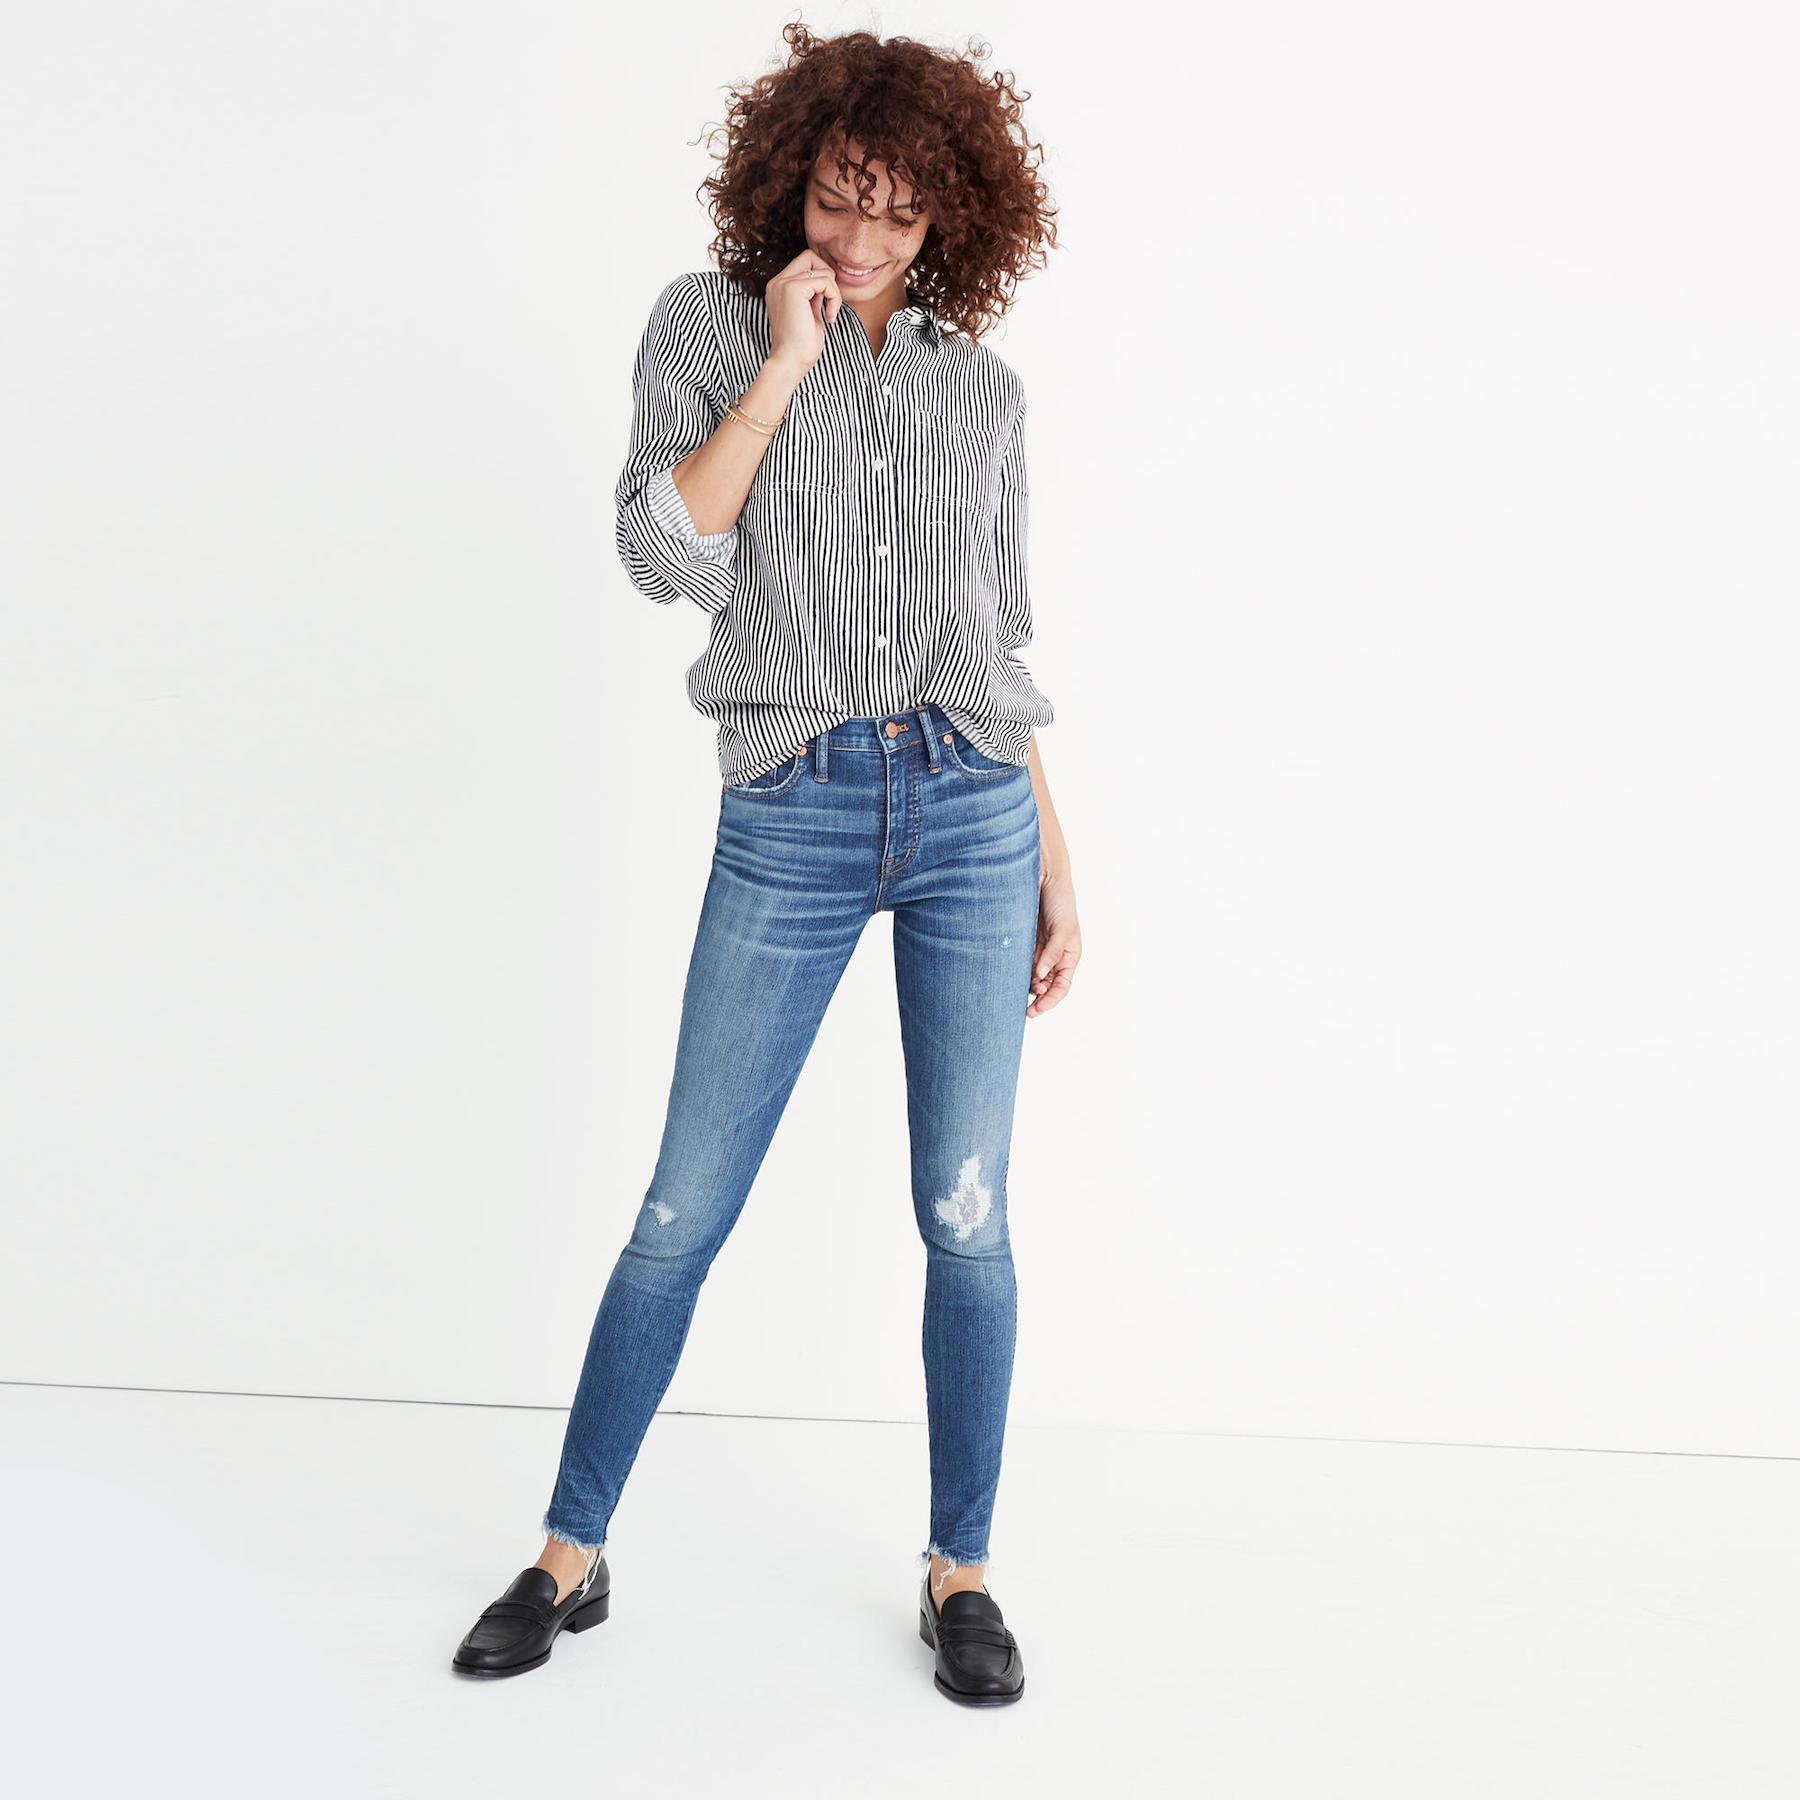 Madewell Blue Jeans on model